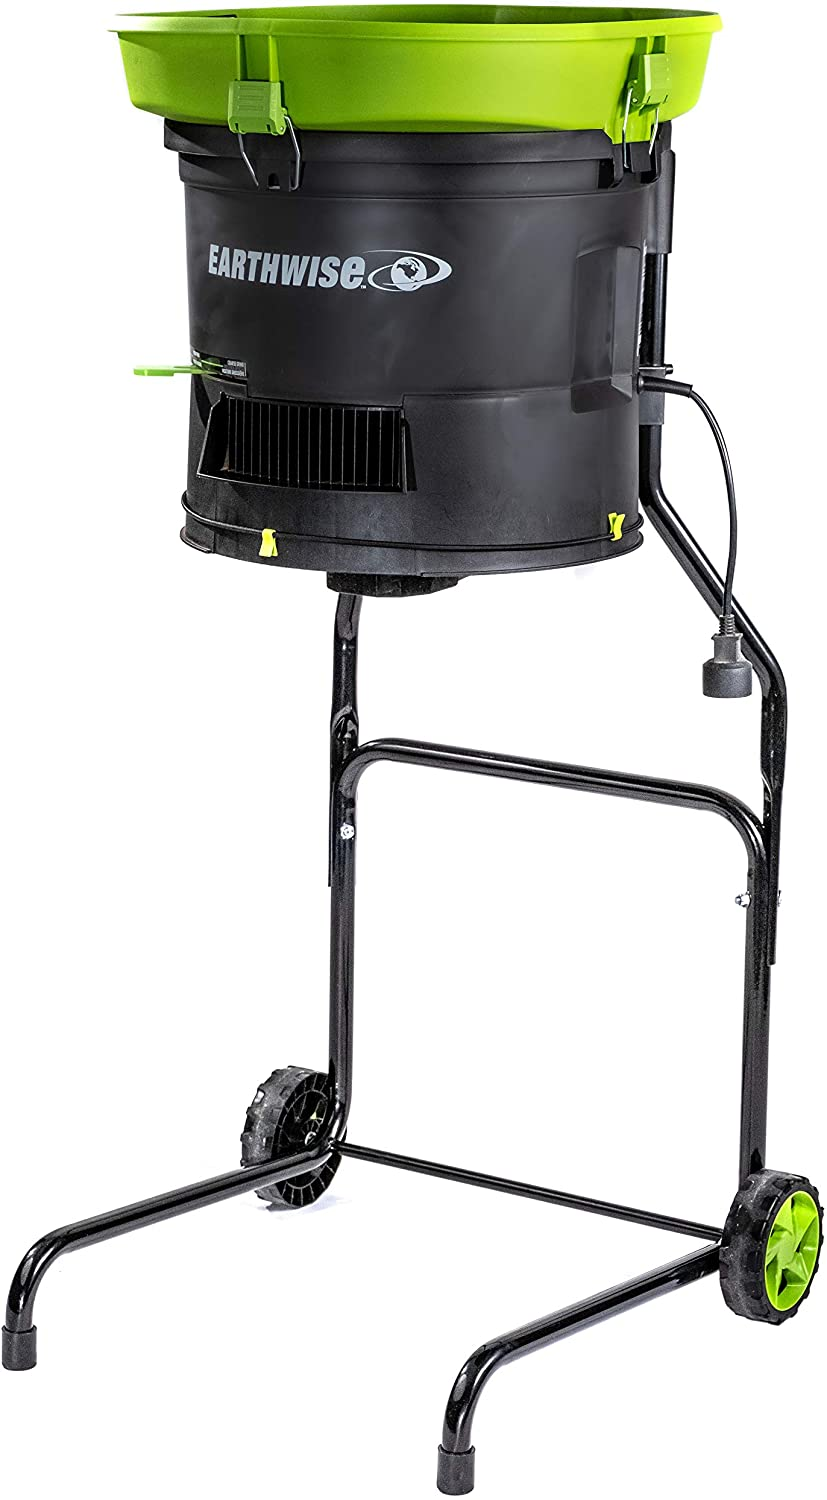 Earthwise LM71313 Amp 13-Inch Corded Electric Leaf Mulcher